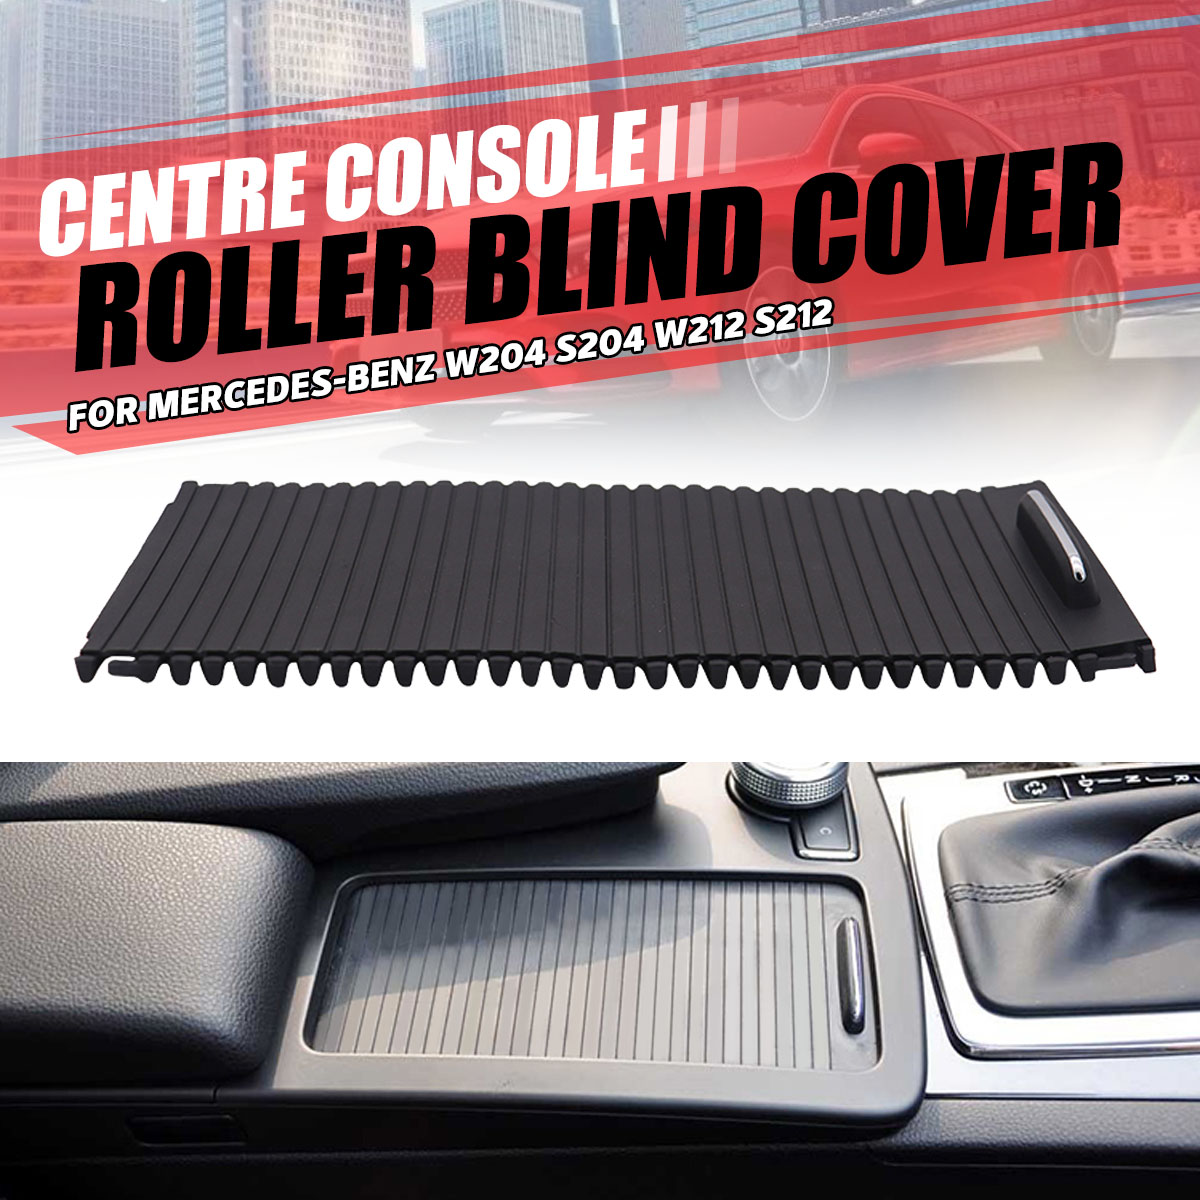 Car Inner Indoor Centre Console Roller Blind Cover For Mercedes C/E-Class W204 S204 W212 S212 A20468076079051